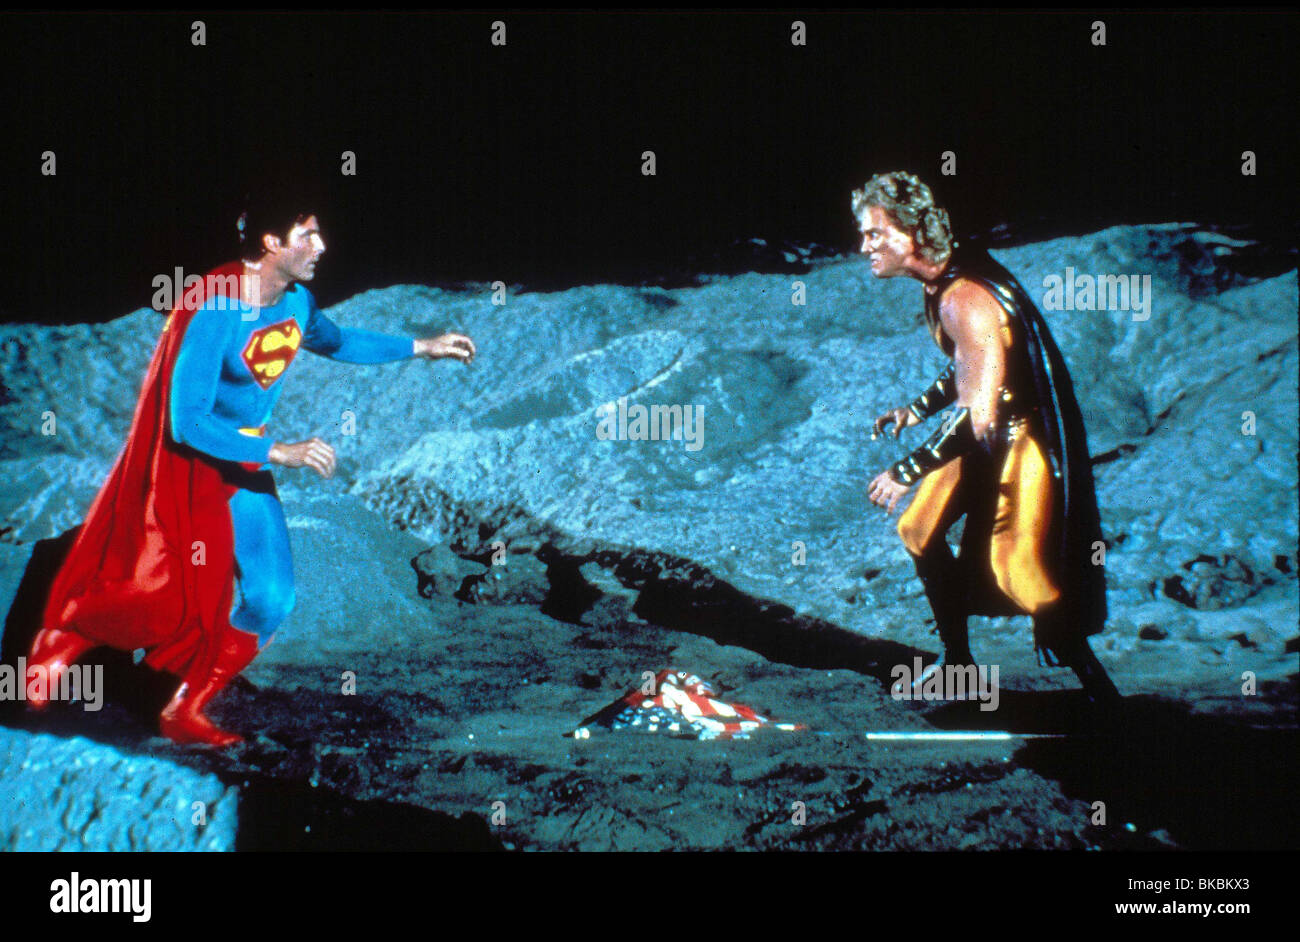 SUPERMAN IV (1987) CHRISTOPHER REEVE, MARK PILLOW SP4 039 - Stock Image